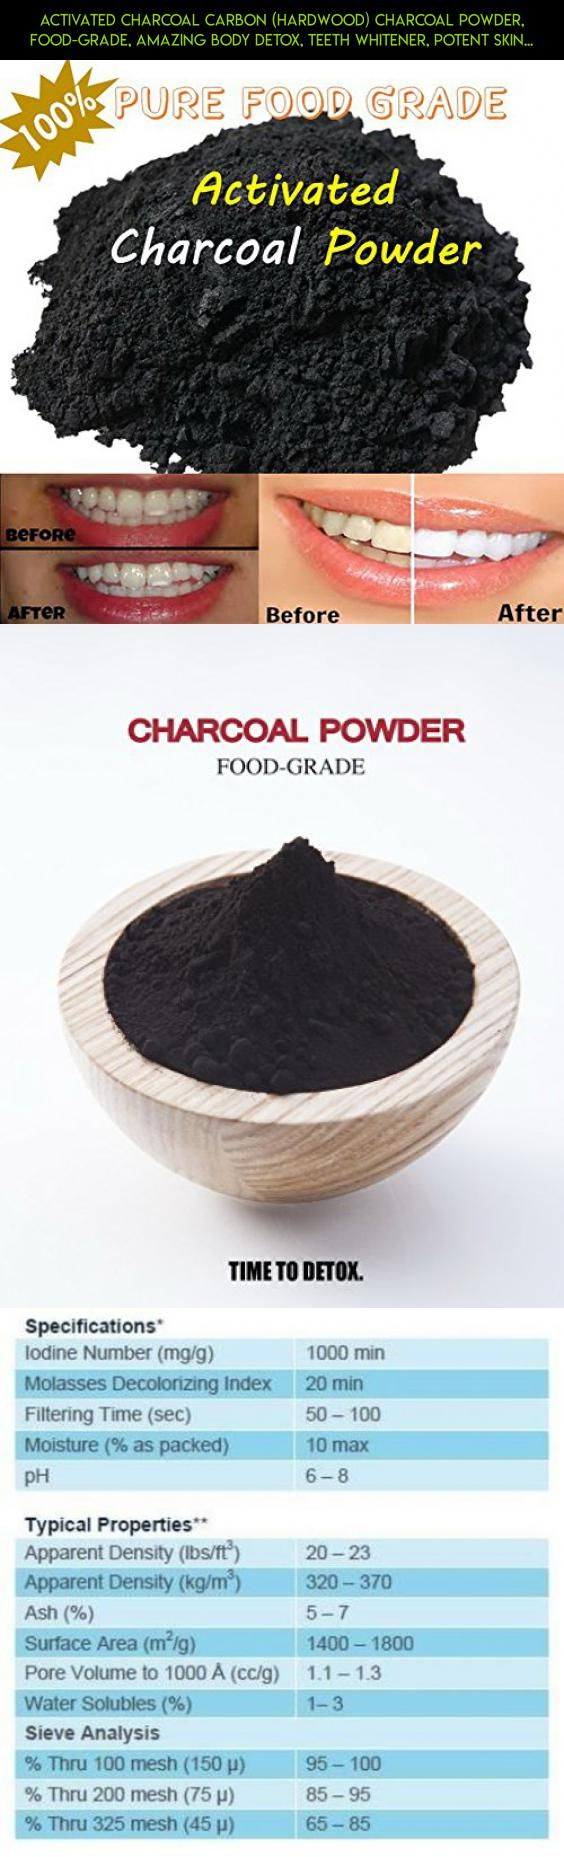 Activated Charcoal Carbon (Hardwood) Charcoal Powder, Food-Grade, Amazing Body Detox, Teeth Whitener, Potent Skin and Digestive Cleanser, Impurity Filter, Odor Eliminator, IMPROVE Overall Health #vinegar #technology #kit #drone #products #camera #shopping #fpv #plans #tech #racing #gardening #parts #gadgets